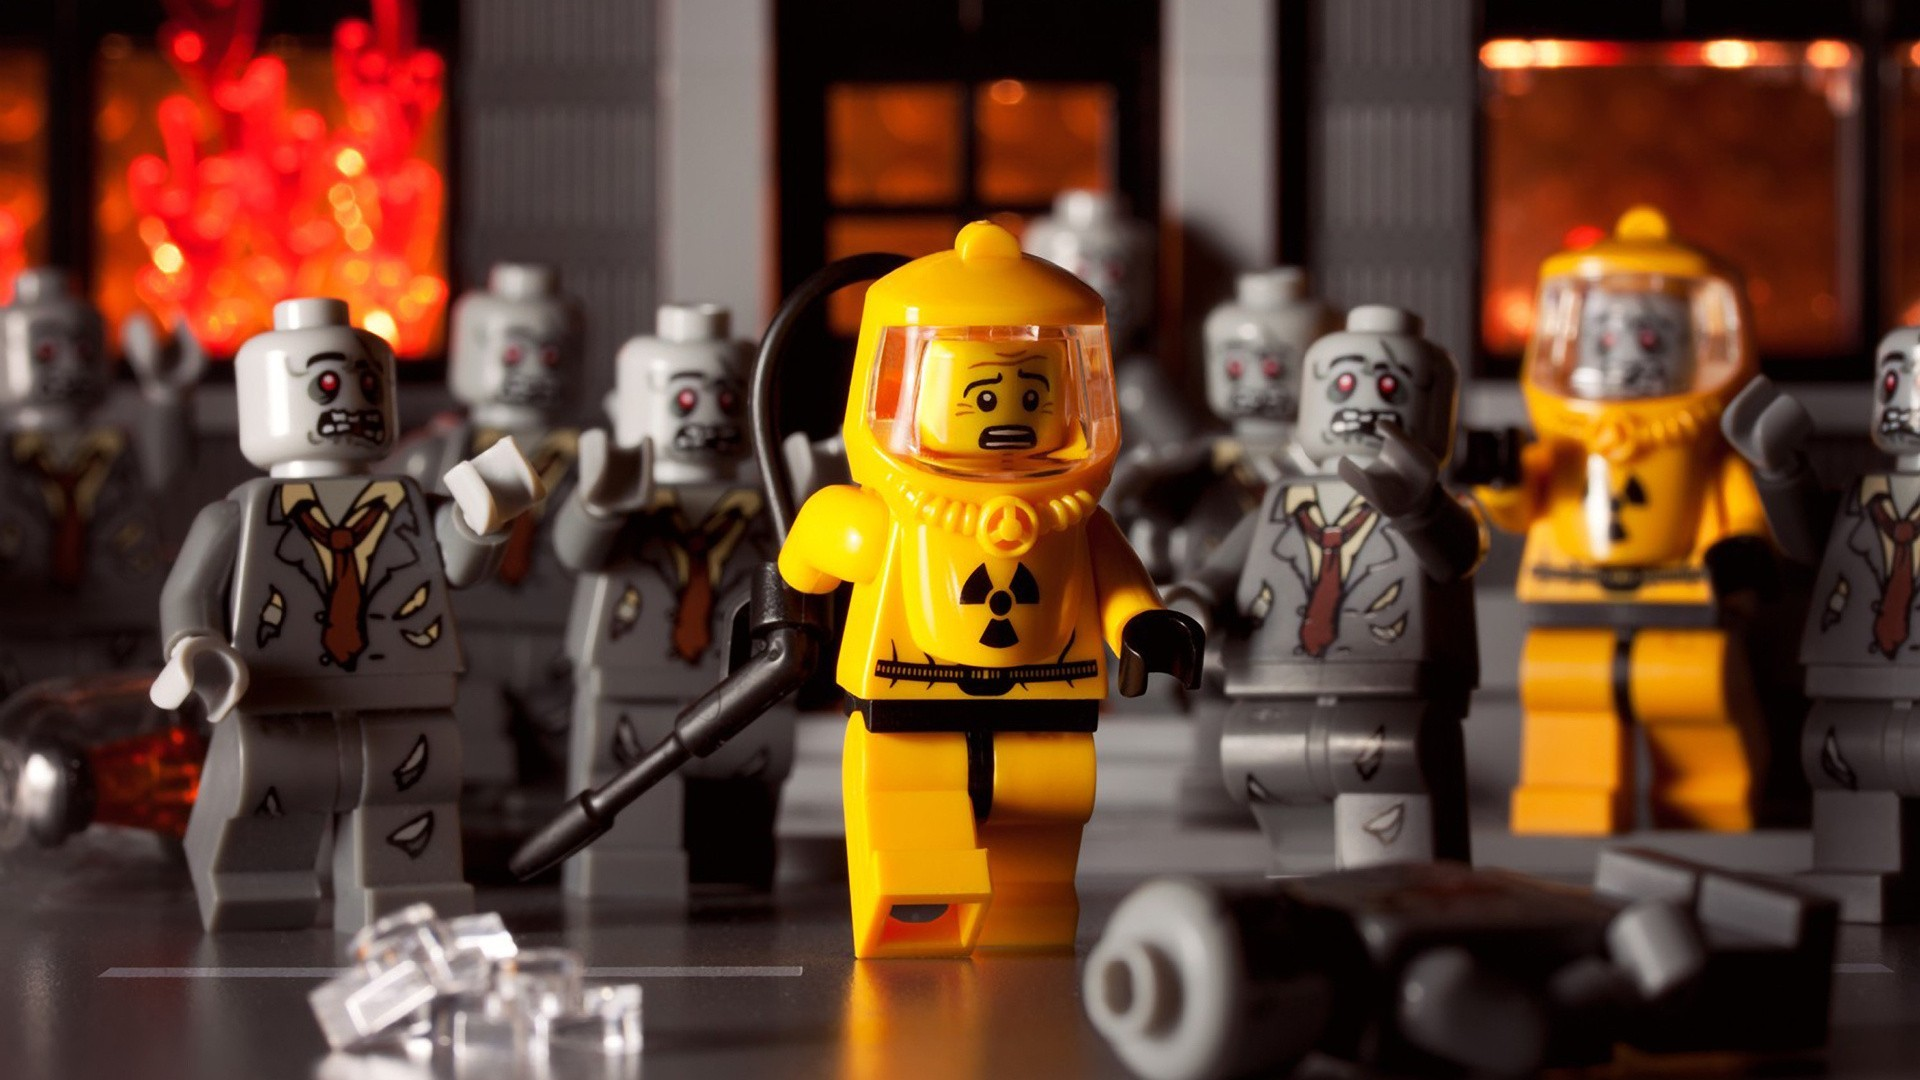 Lego Hd Cartoons 4k Wallpapers Images Backgrounds Photos And Pictures